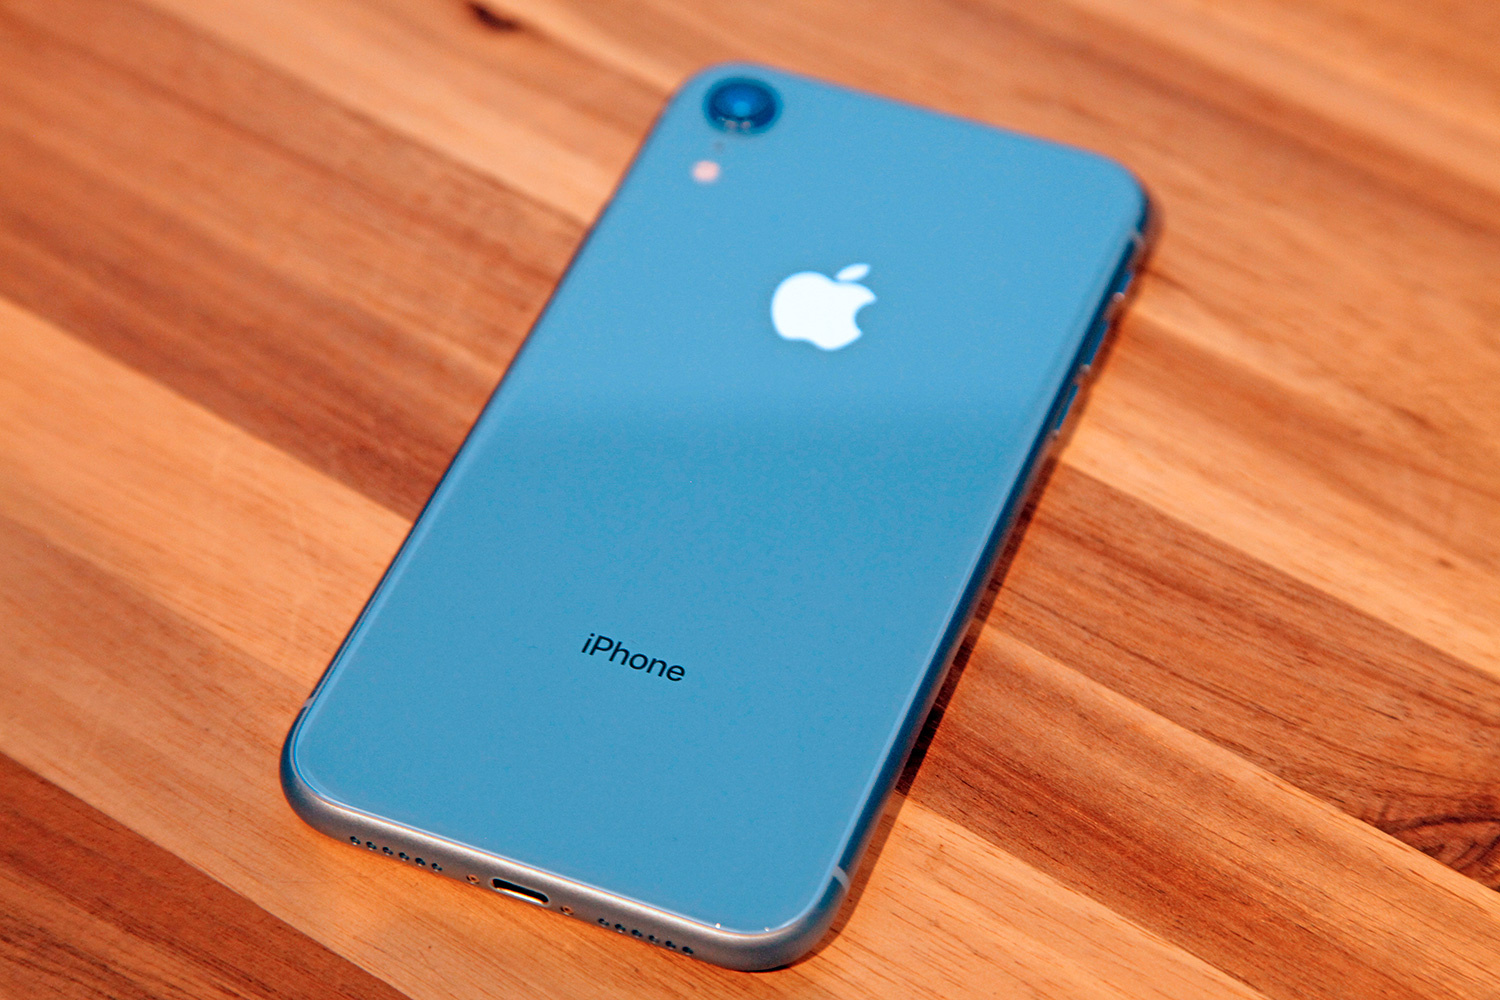 Double your iPhone XR's battery life for $27